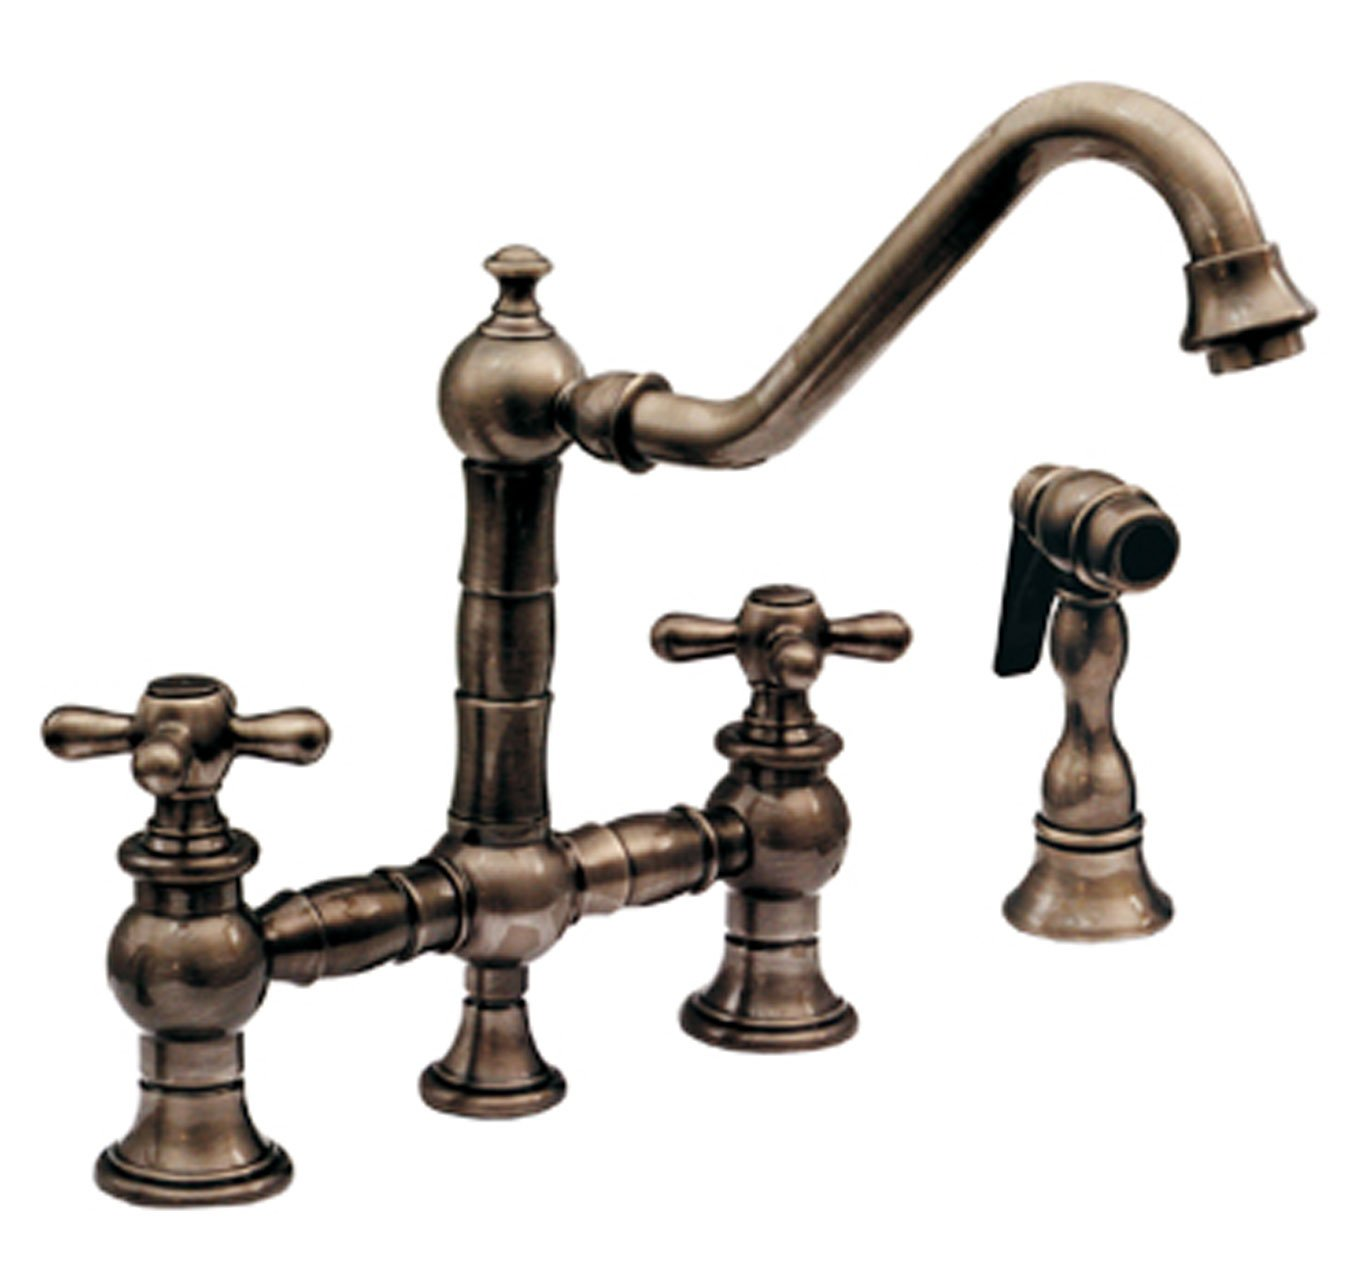 Whitehaus WHKBTCR3 9201 MABRZ Vintage III Kitchen Bridge Faucet With Long  Traditional Swivel Spout, Cross Handles, And Matching Side Spray      Amazon.com